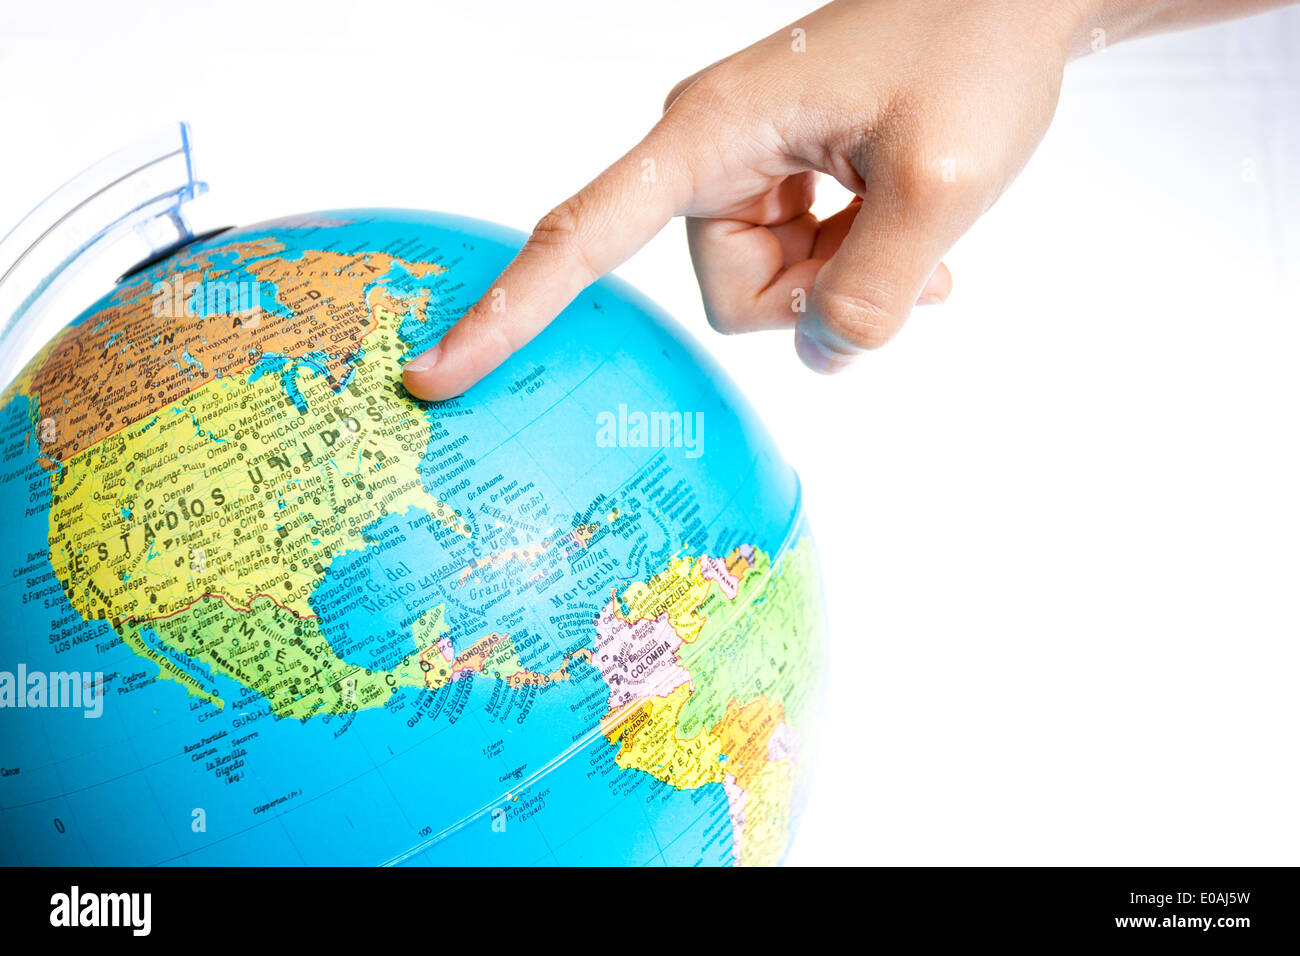 Finger Pointing United States On The Global Map Stock Photo - How to free hand a map of the us